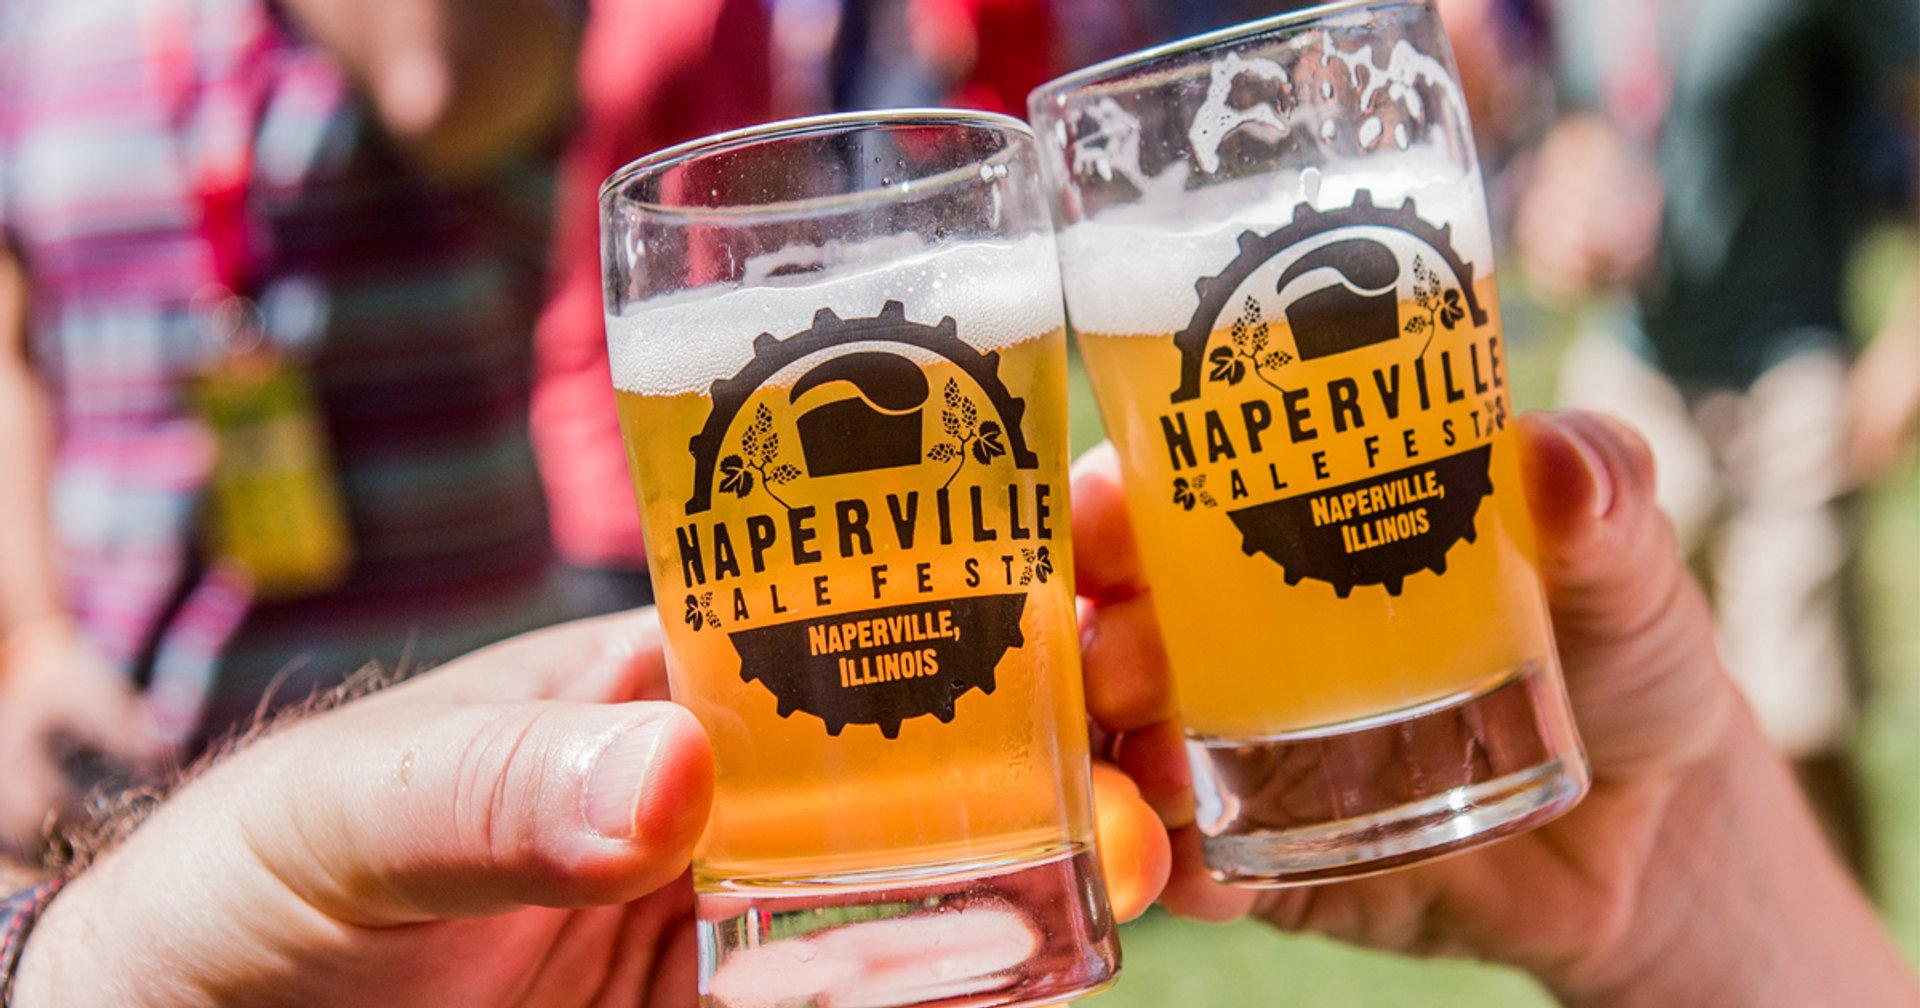 Naperville Ale Fest in Illinois 2020 - Best Time